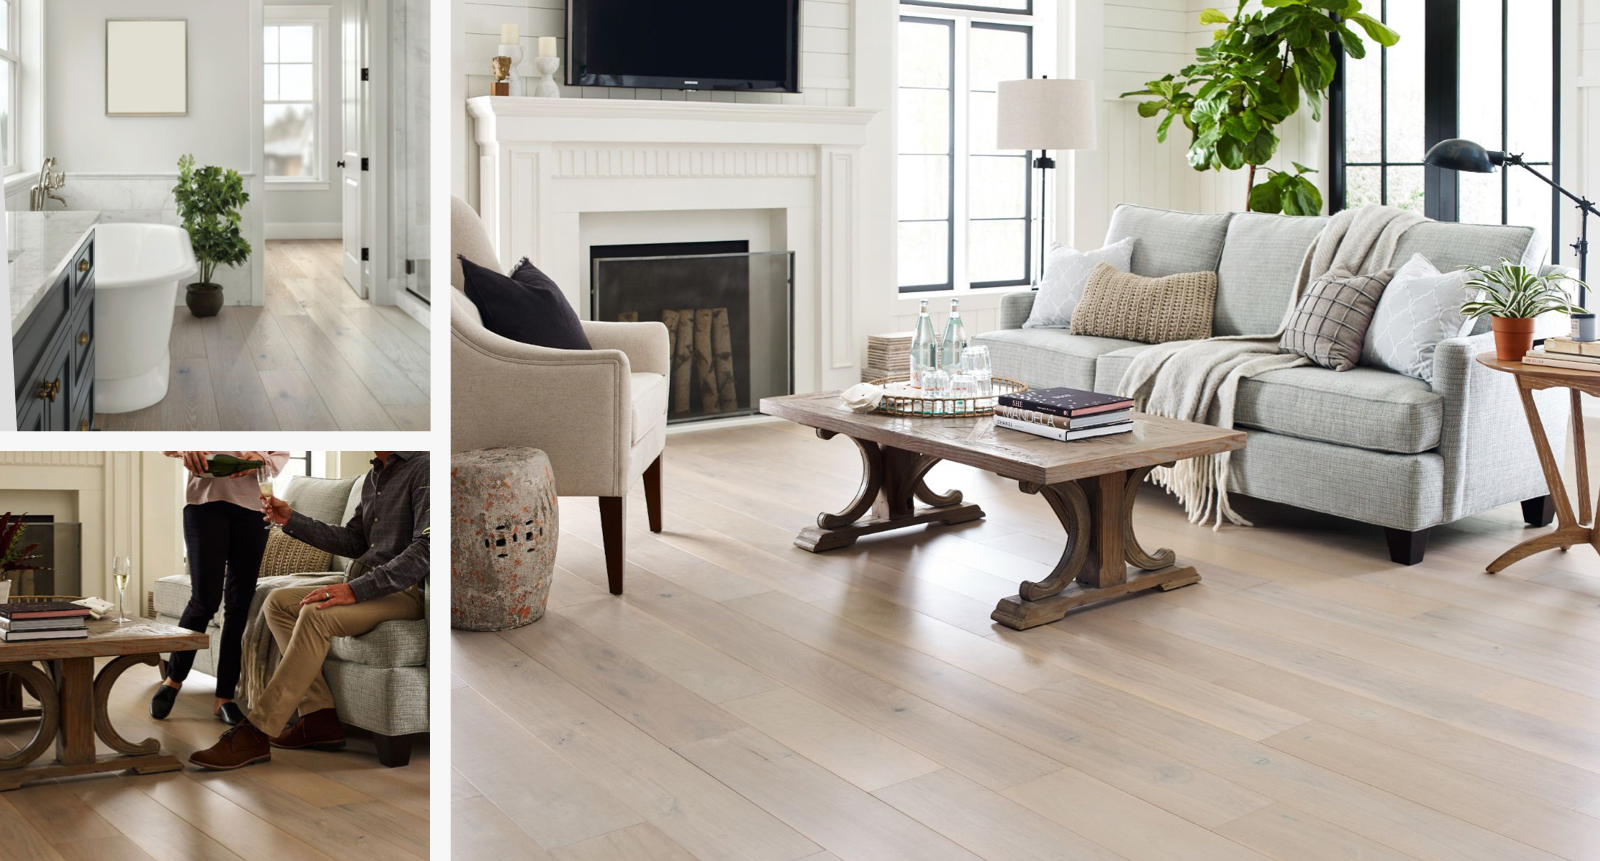 Floorte waterproof hardwood flooring for your home | Family Floors